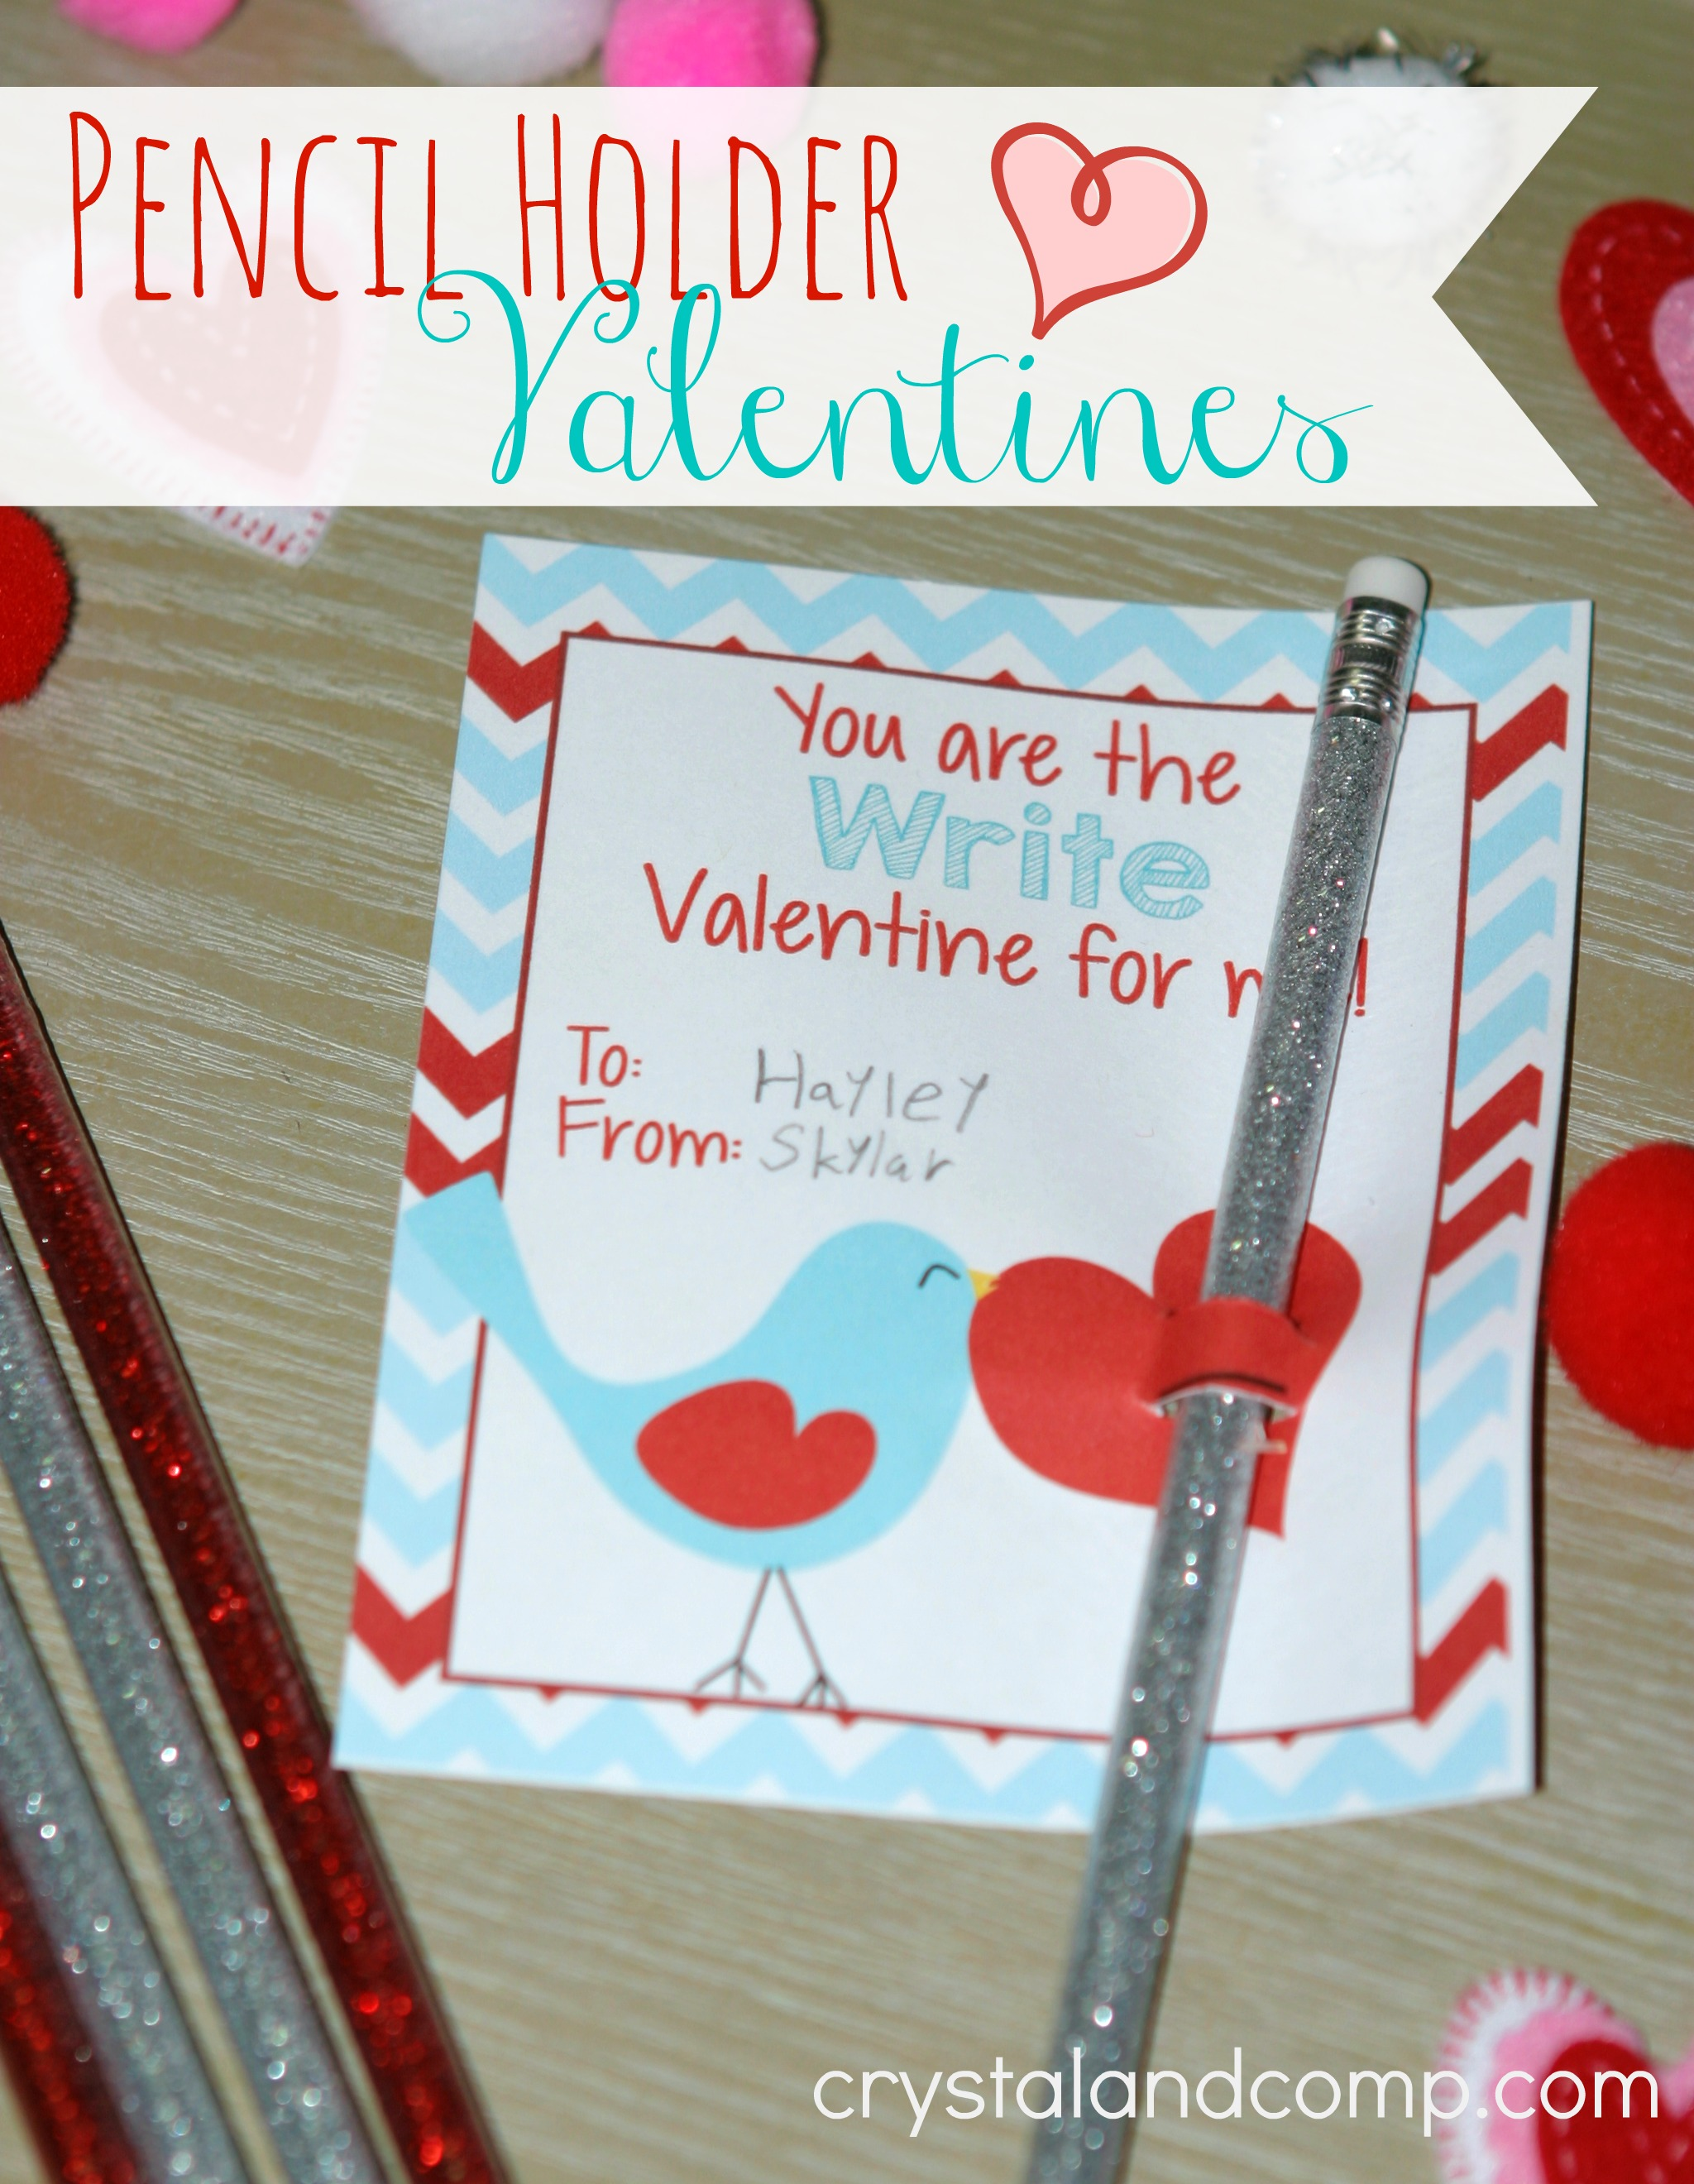 photo regarding Printable Valentine Craft named Valentine Pencil Holder